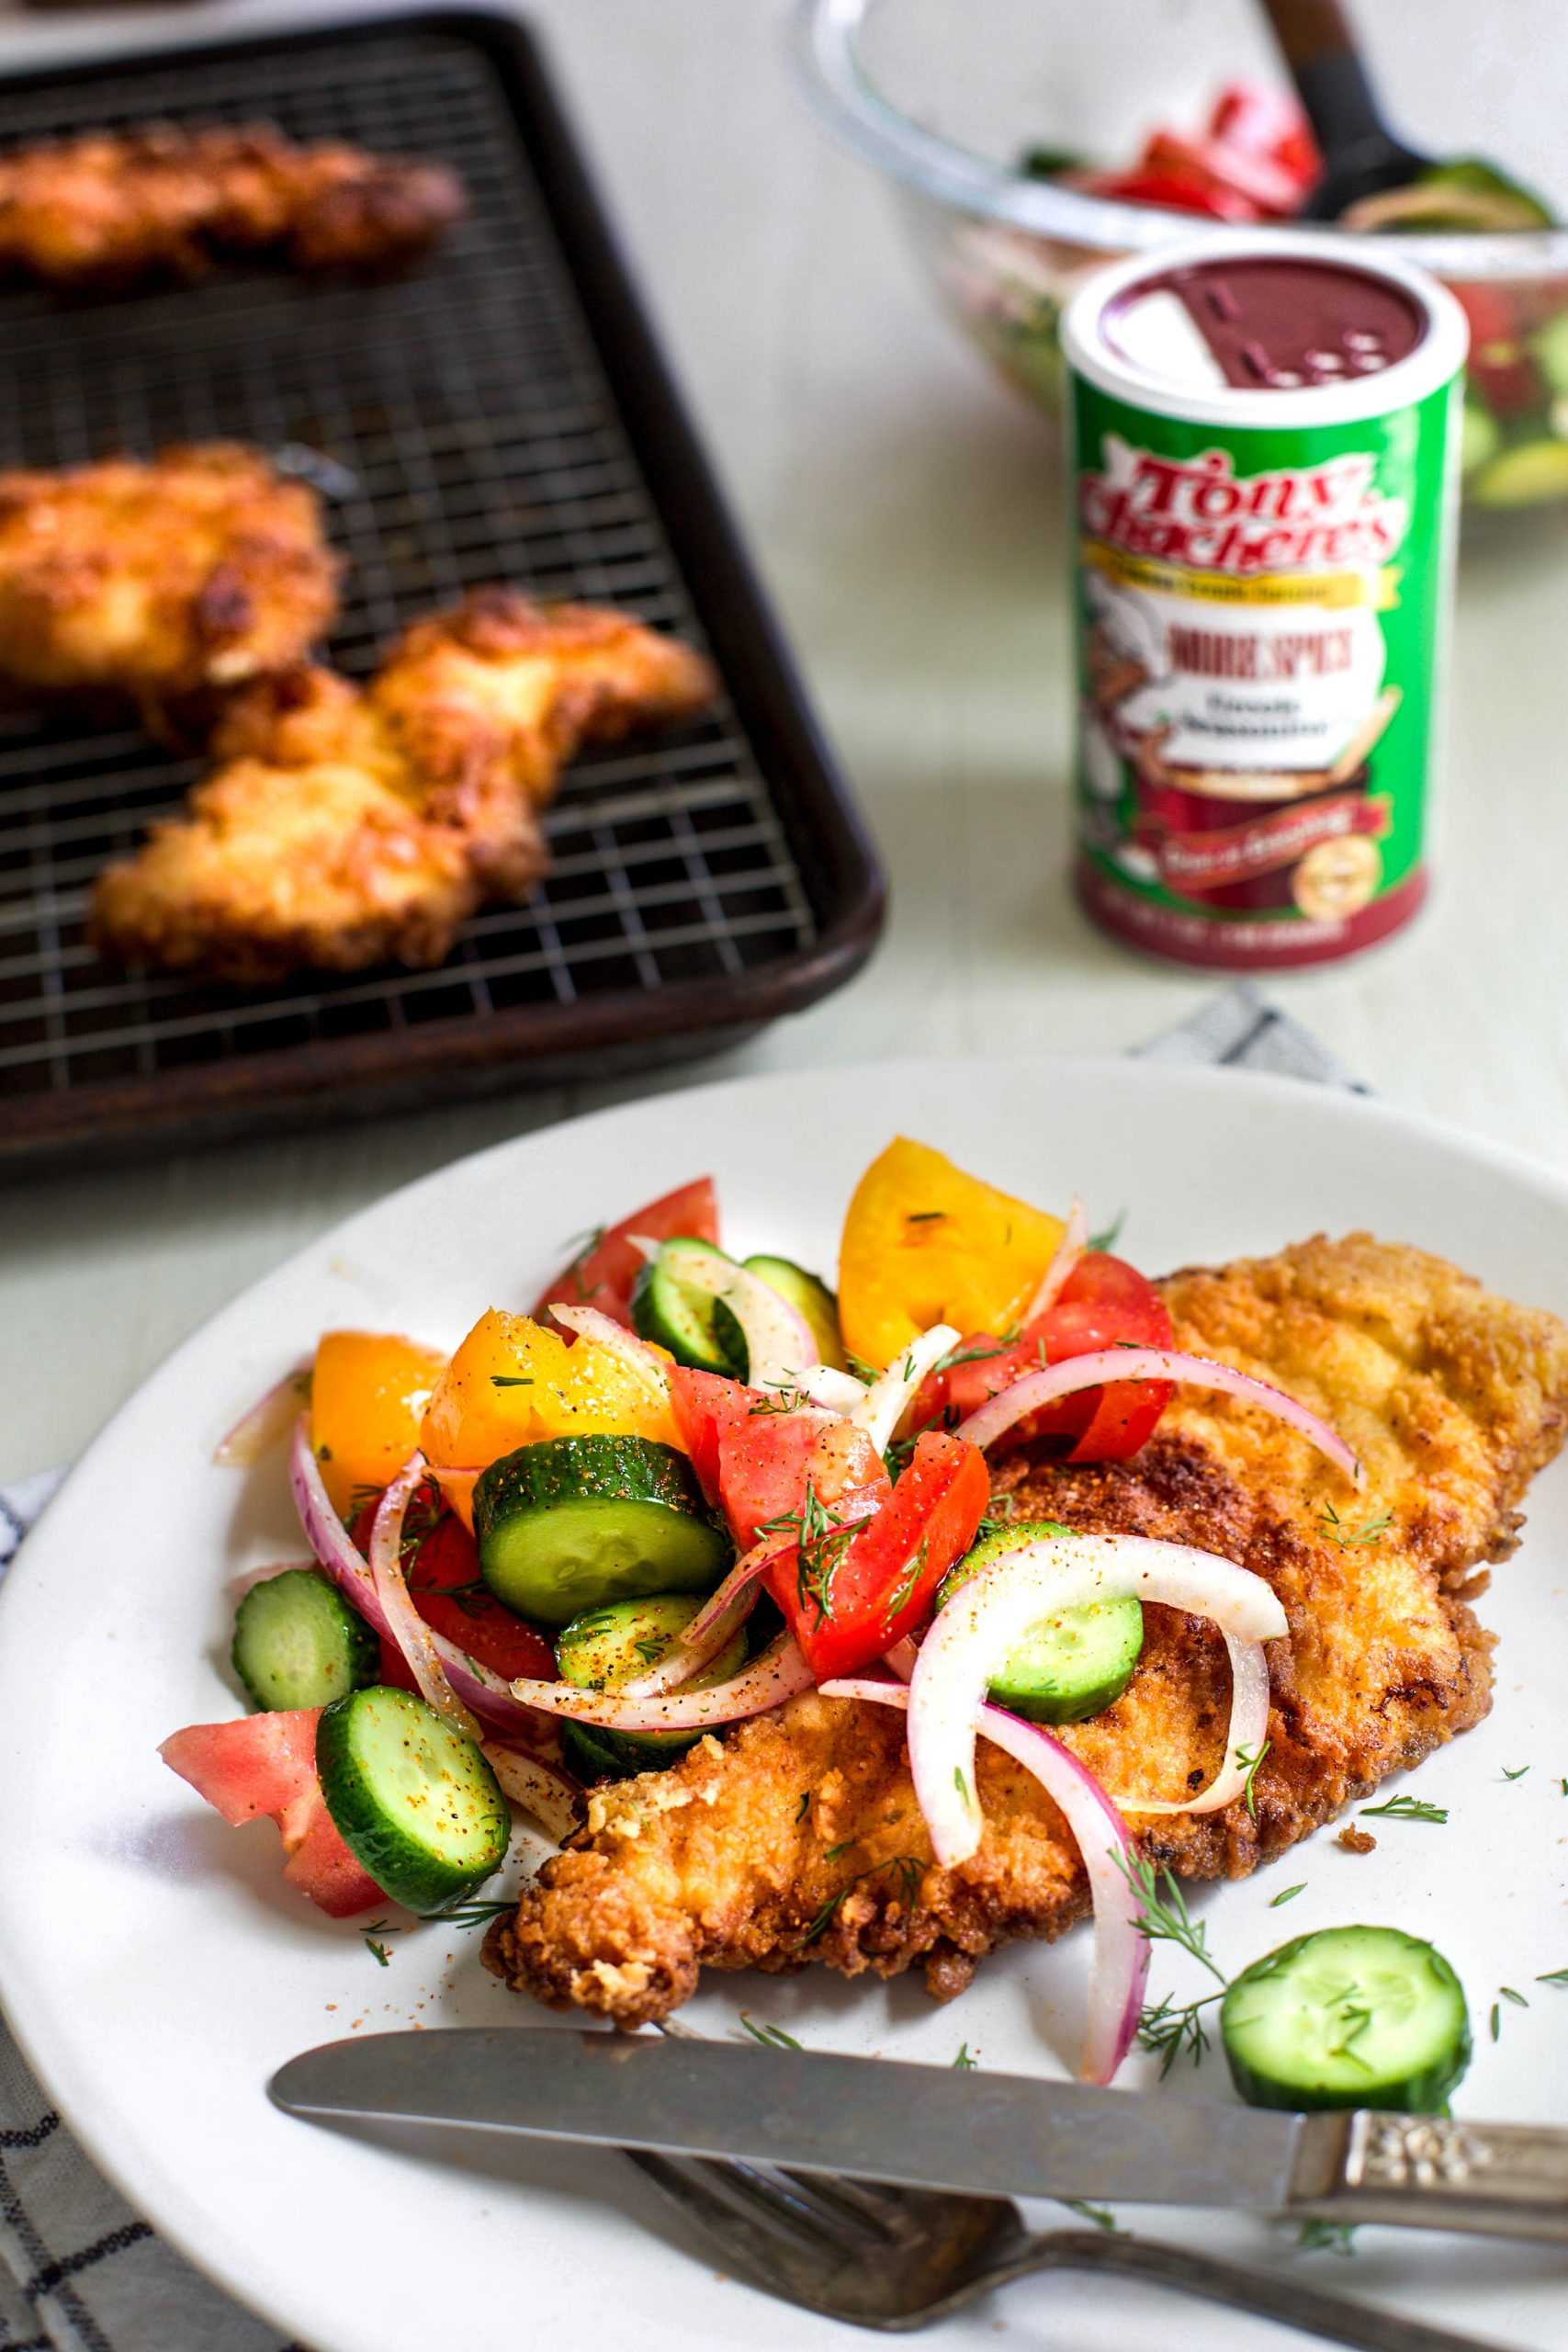 Crispy Creole Chicken Cutlets with Tomato Cucumber Salad